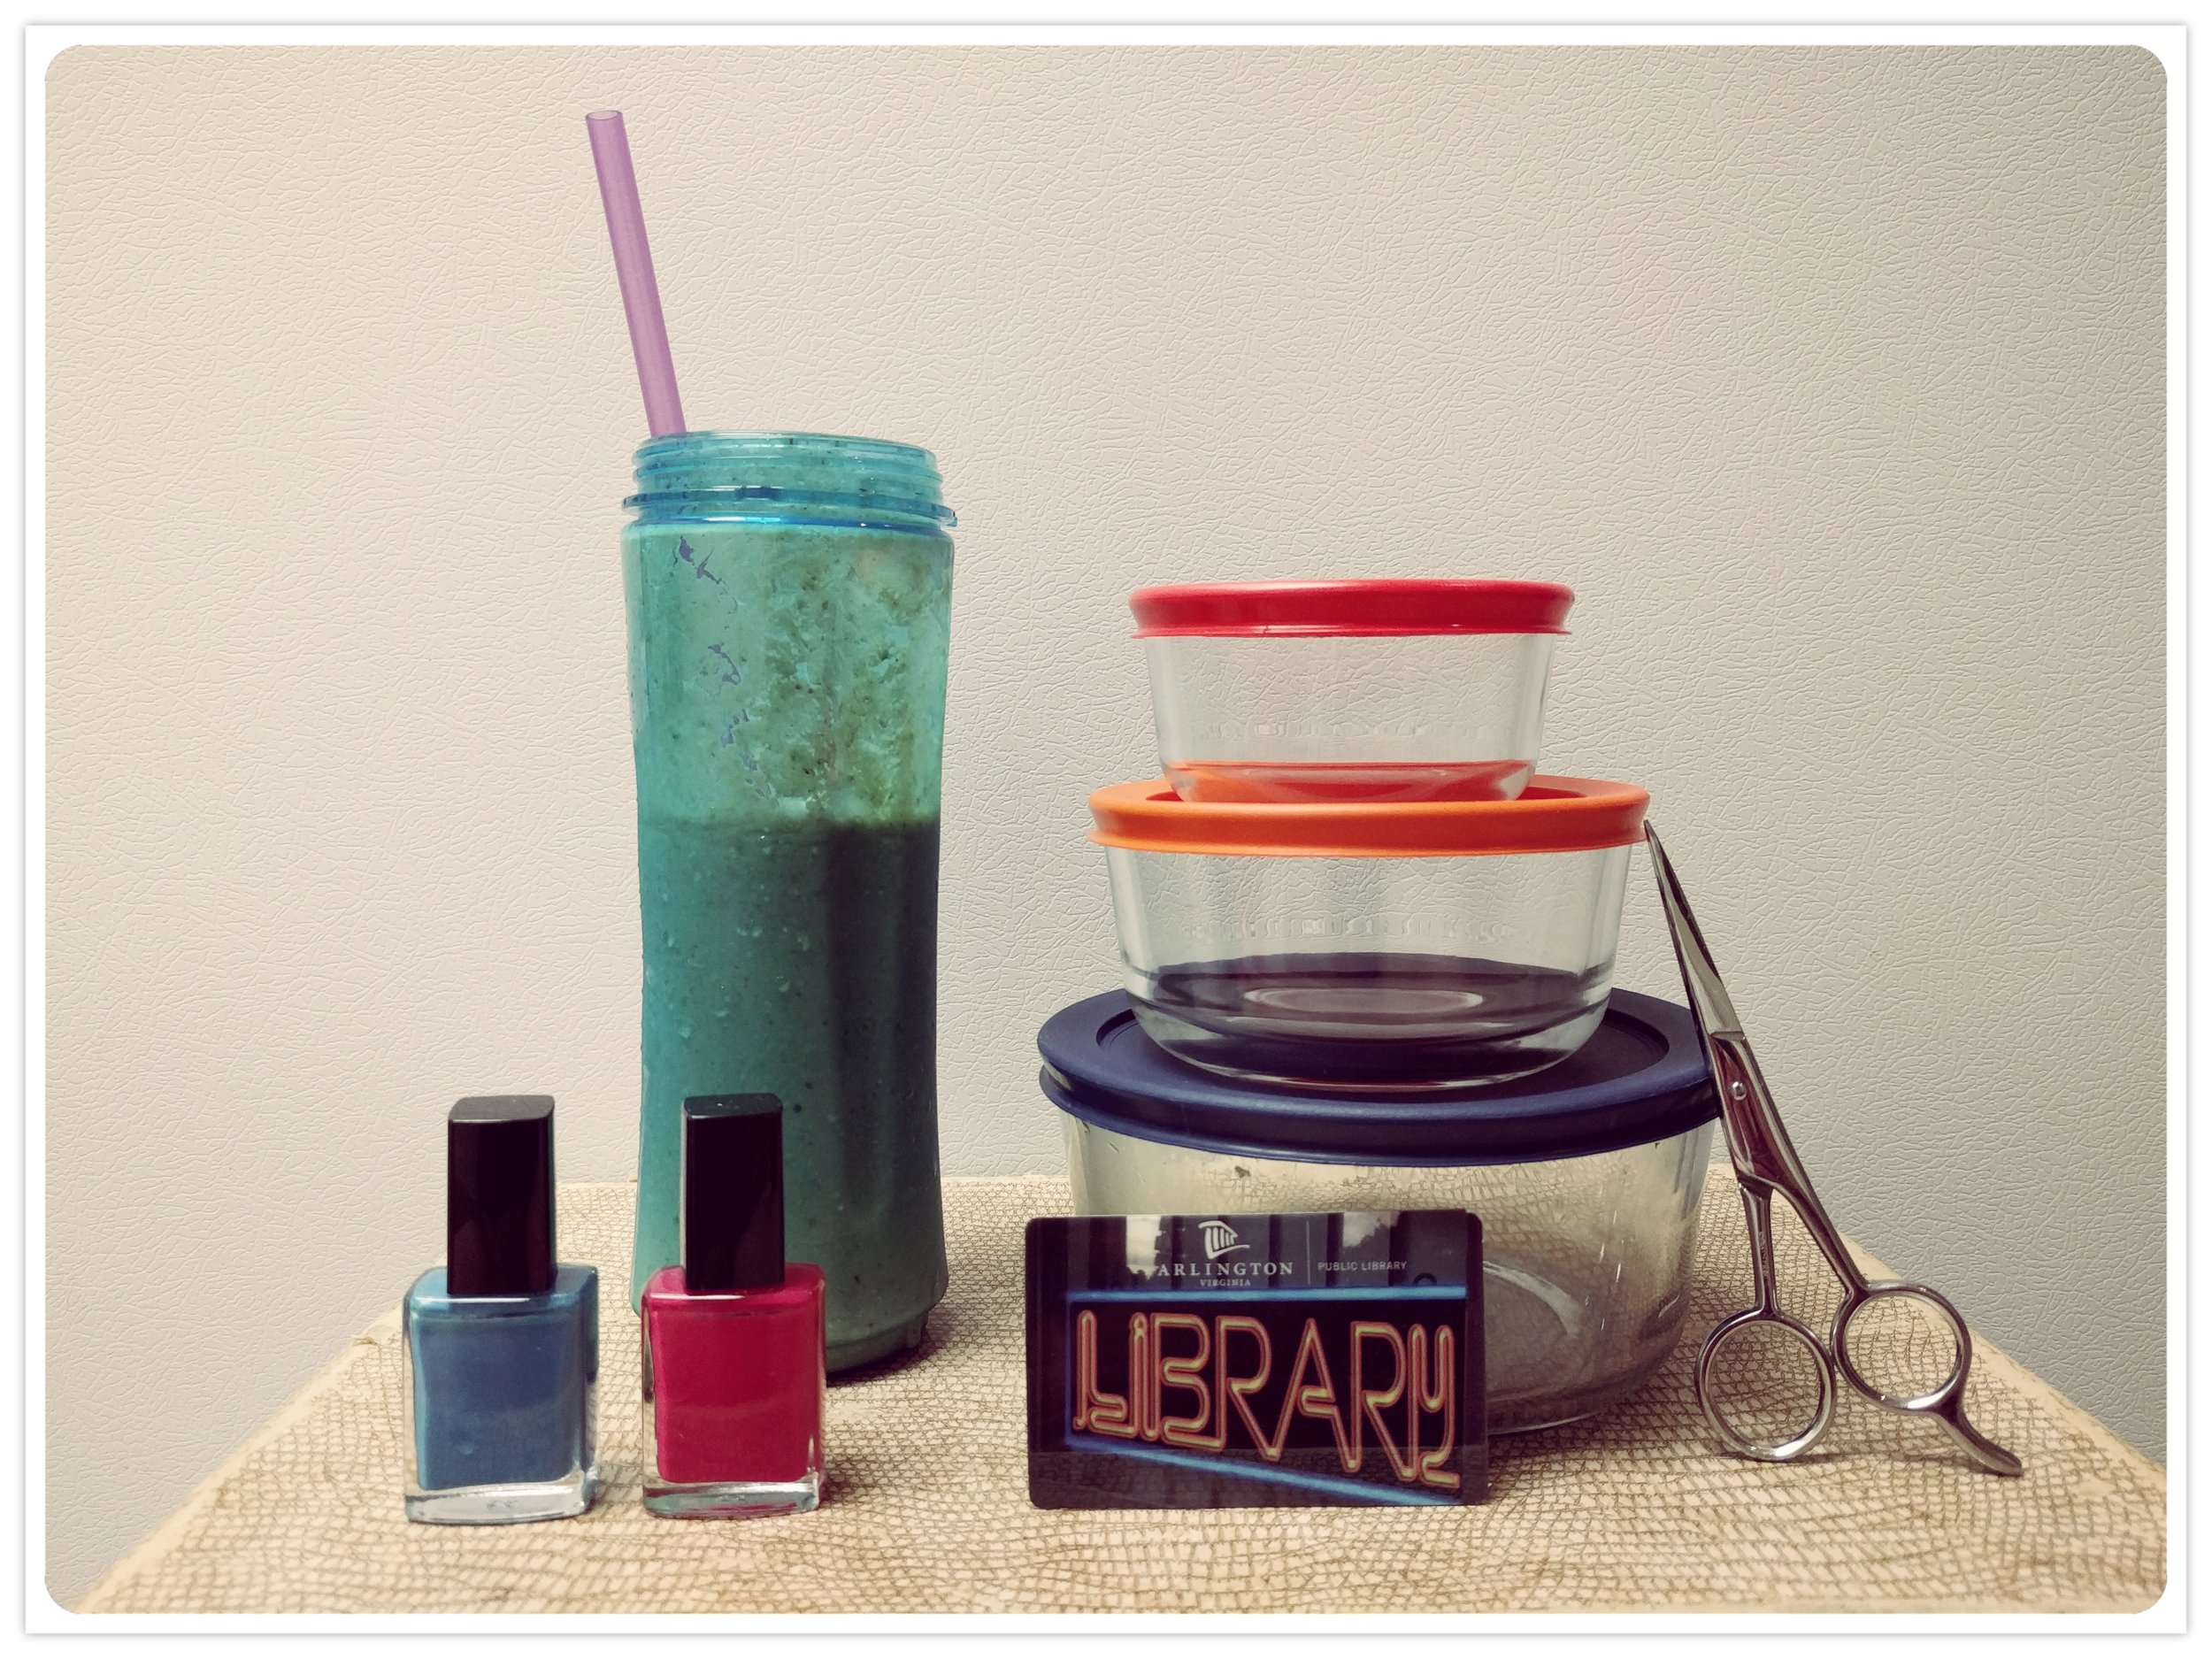 The tools of my frugality: homemade smoothie from a ready-made freezer pack, nail polish for DIY manicures, reusable lunch containers, hair-cutting scissors, and my handy dandy library card.